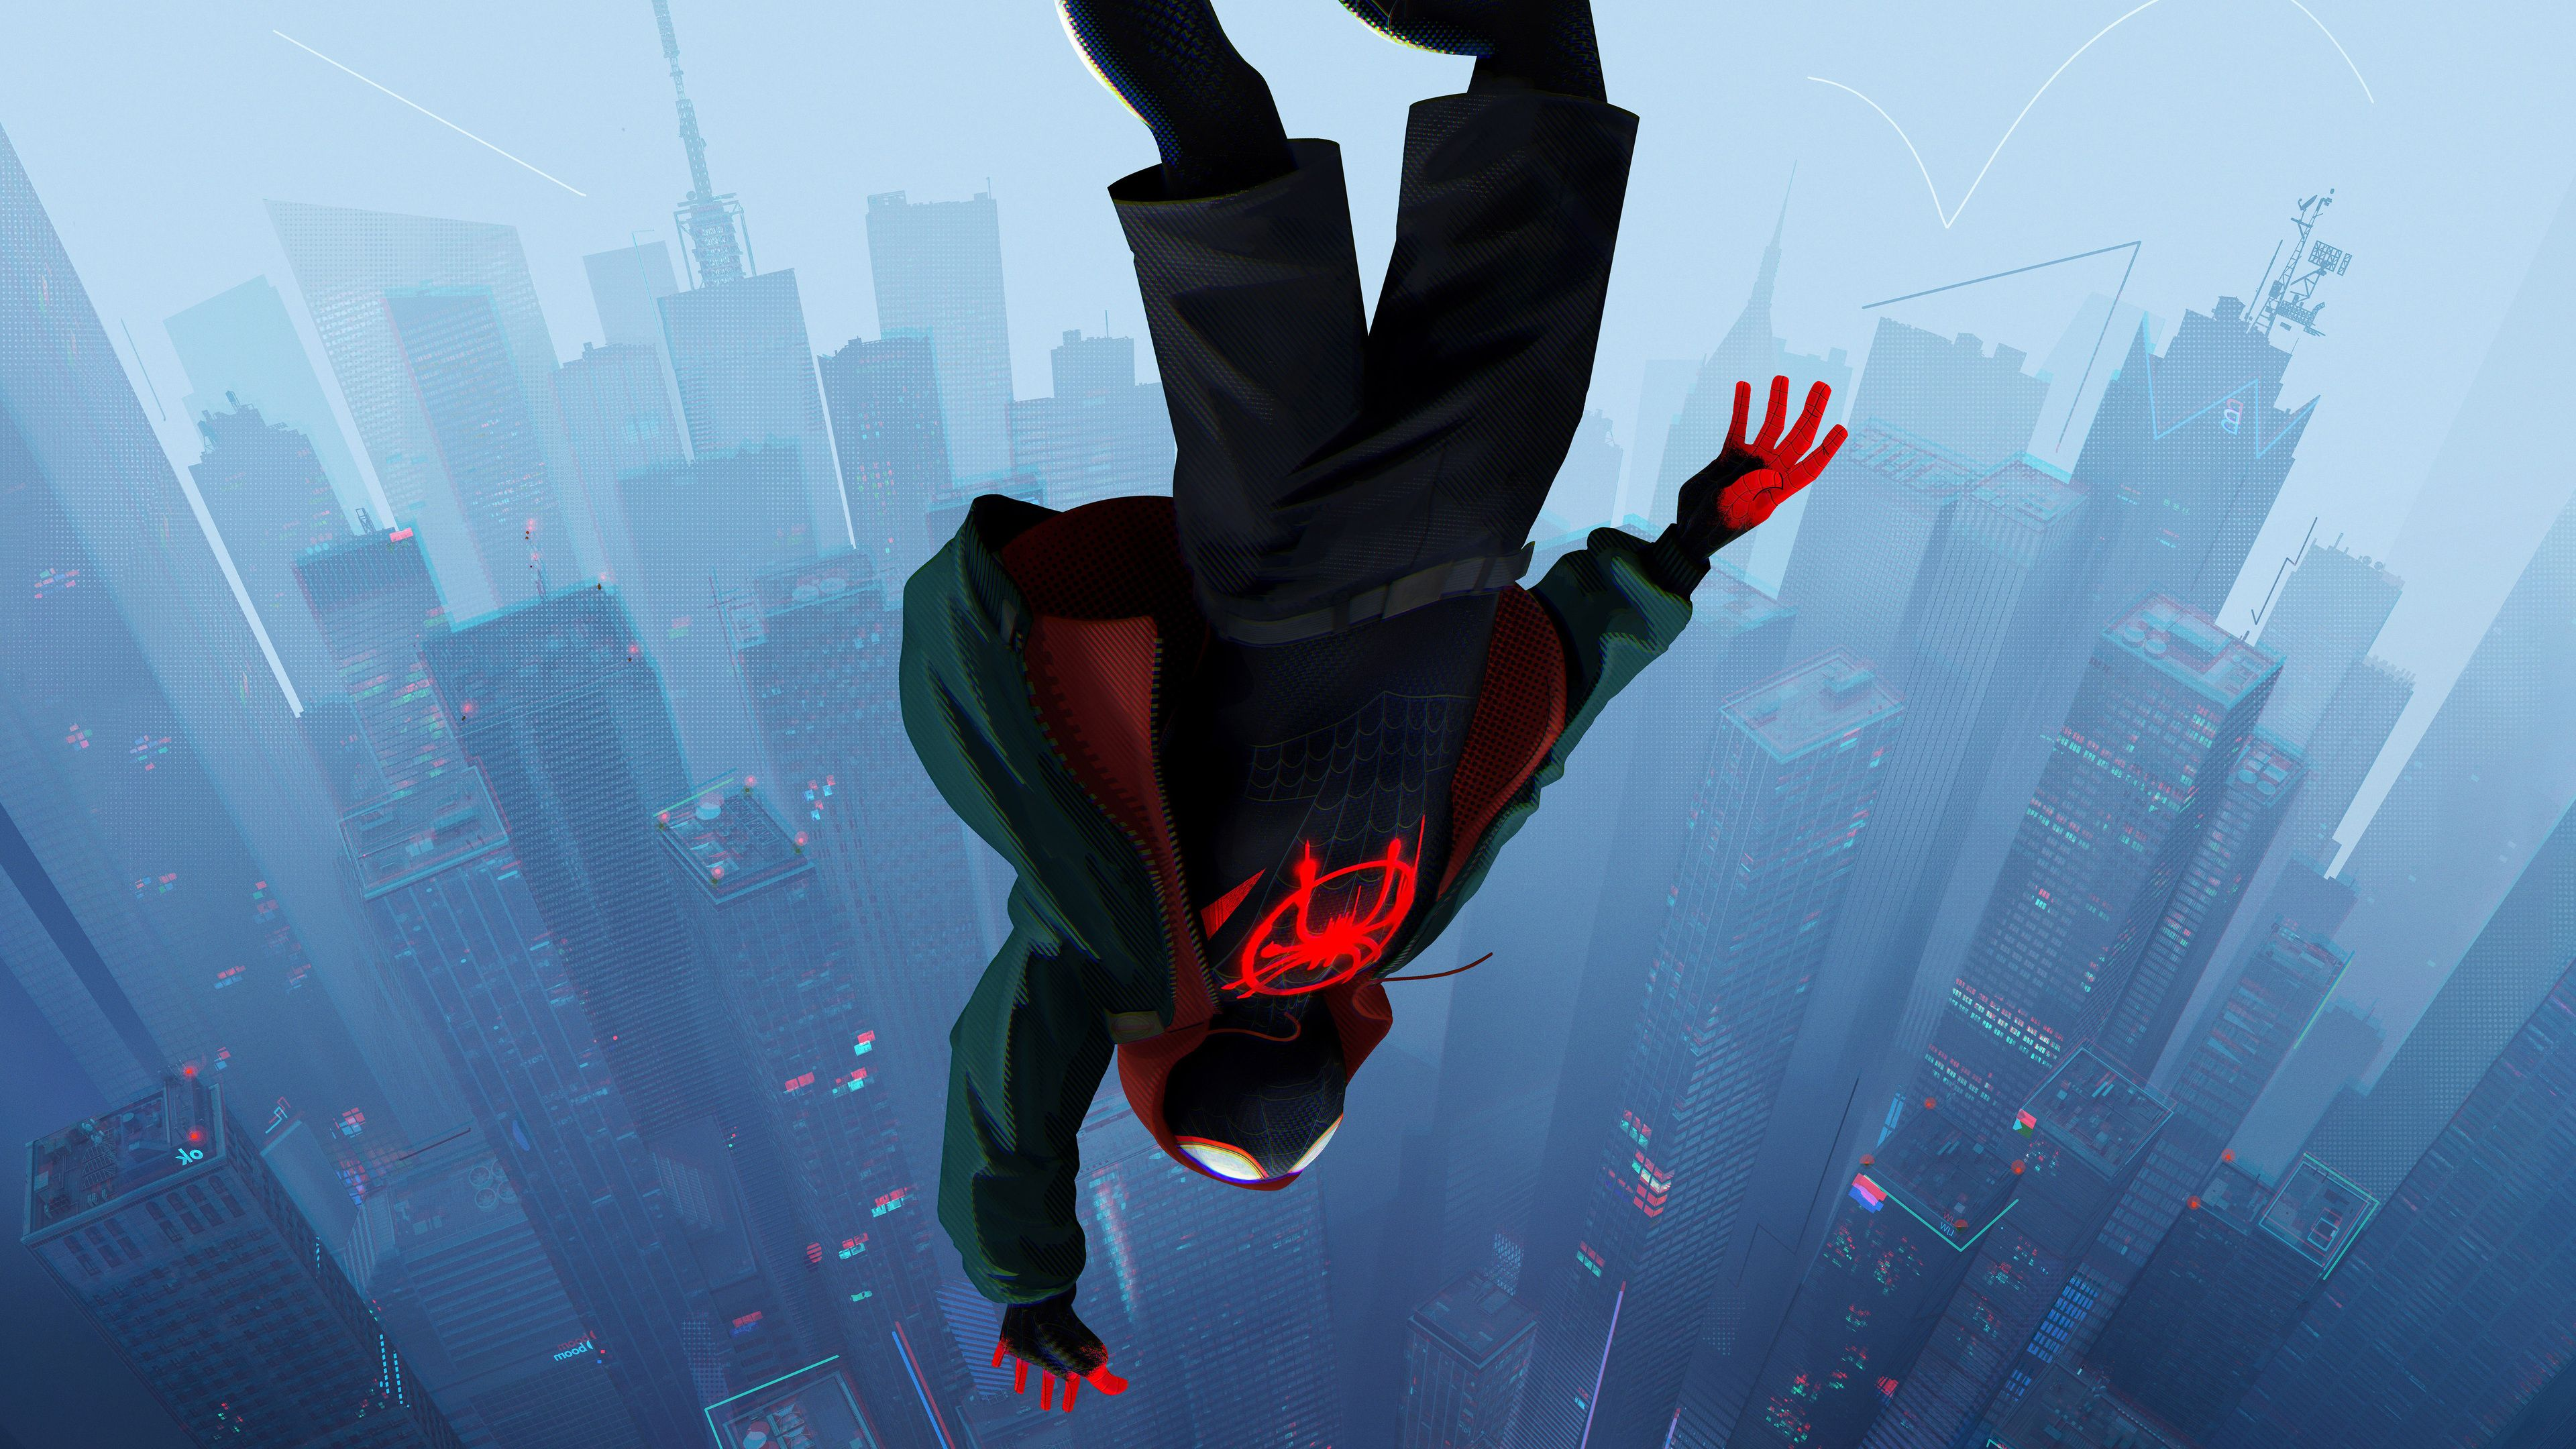 General 3840x2160 Spider Man Into The Spider Verse Miles Morales Spider Man Marvel Comics Movies Animated Movie Spider Verse Marvel Comics Wallpaper Spiderman